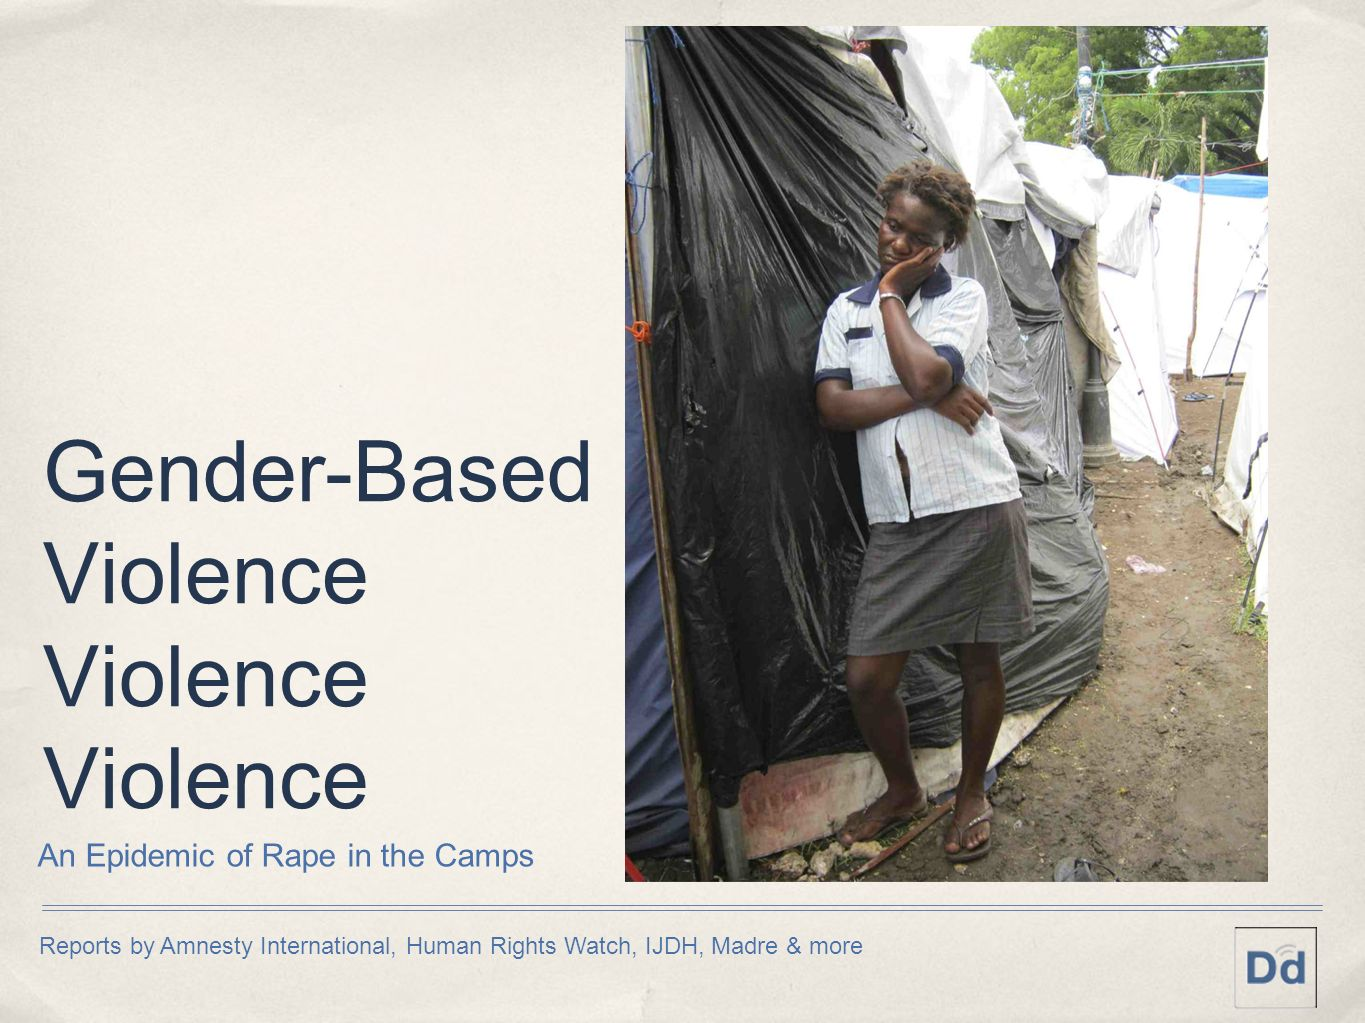 Gender-Based Violence Violence Violence An Epidemic of Rape in the Camps Reports by Amnesty International, Human Rights Watch, IJDH, Madre & more